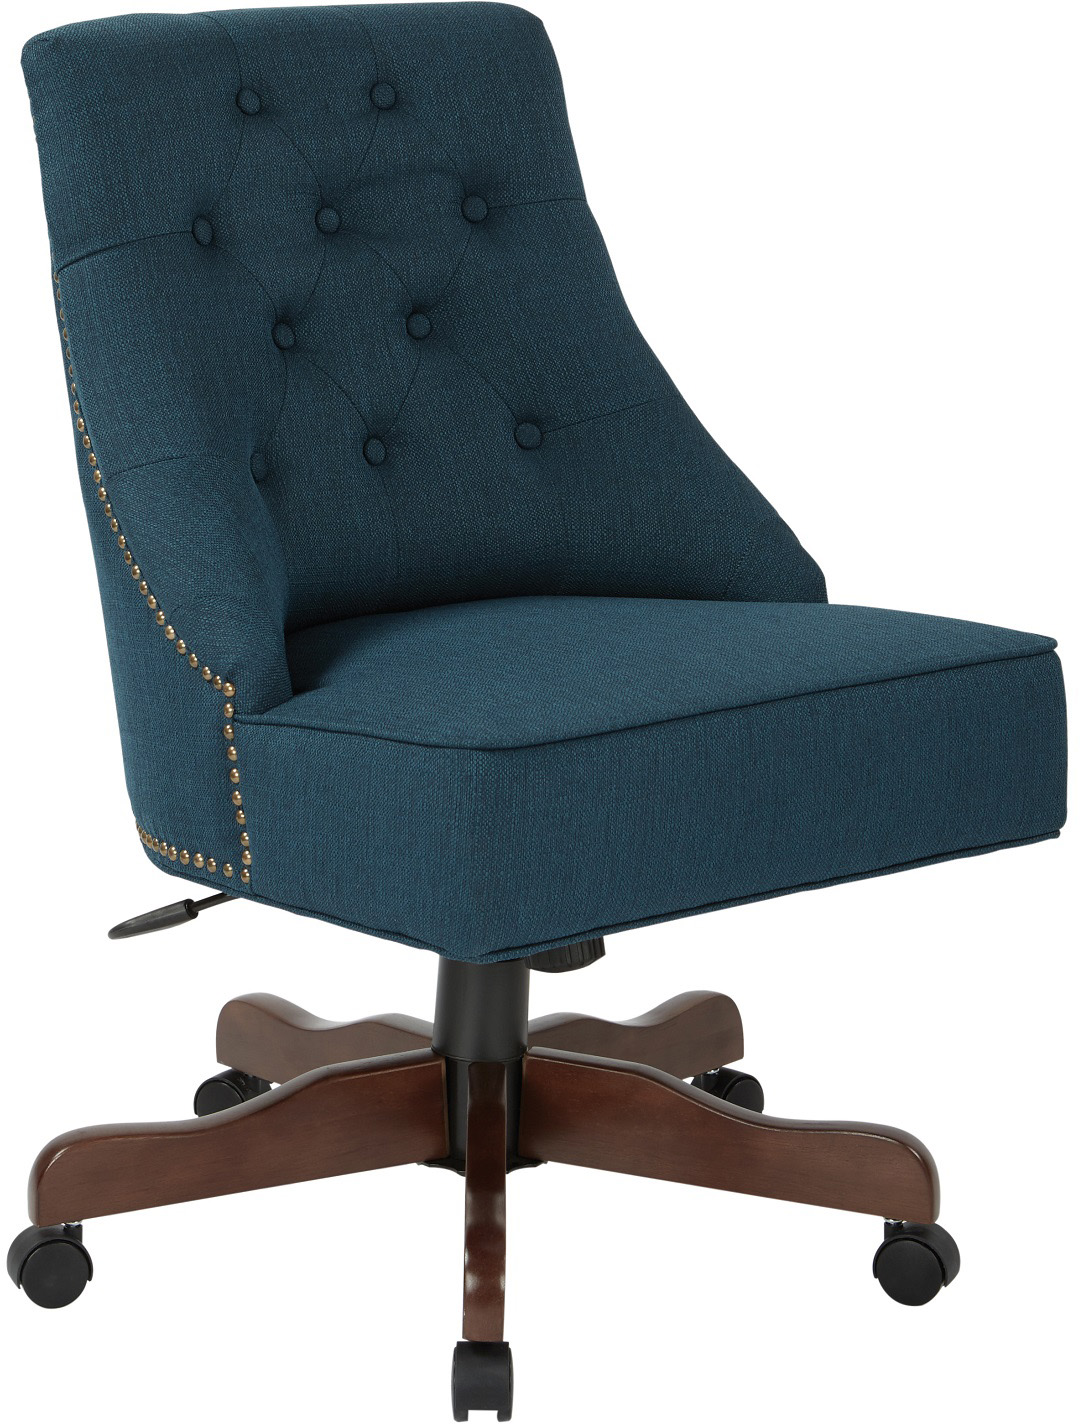 hight resolution of rebecca tufted back office chair in klein azure fabric with nailheads with coffee base